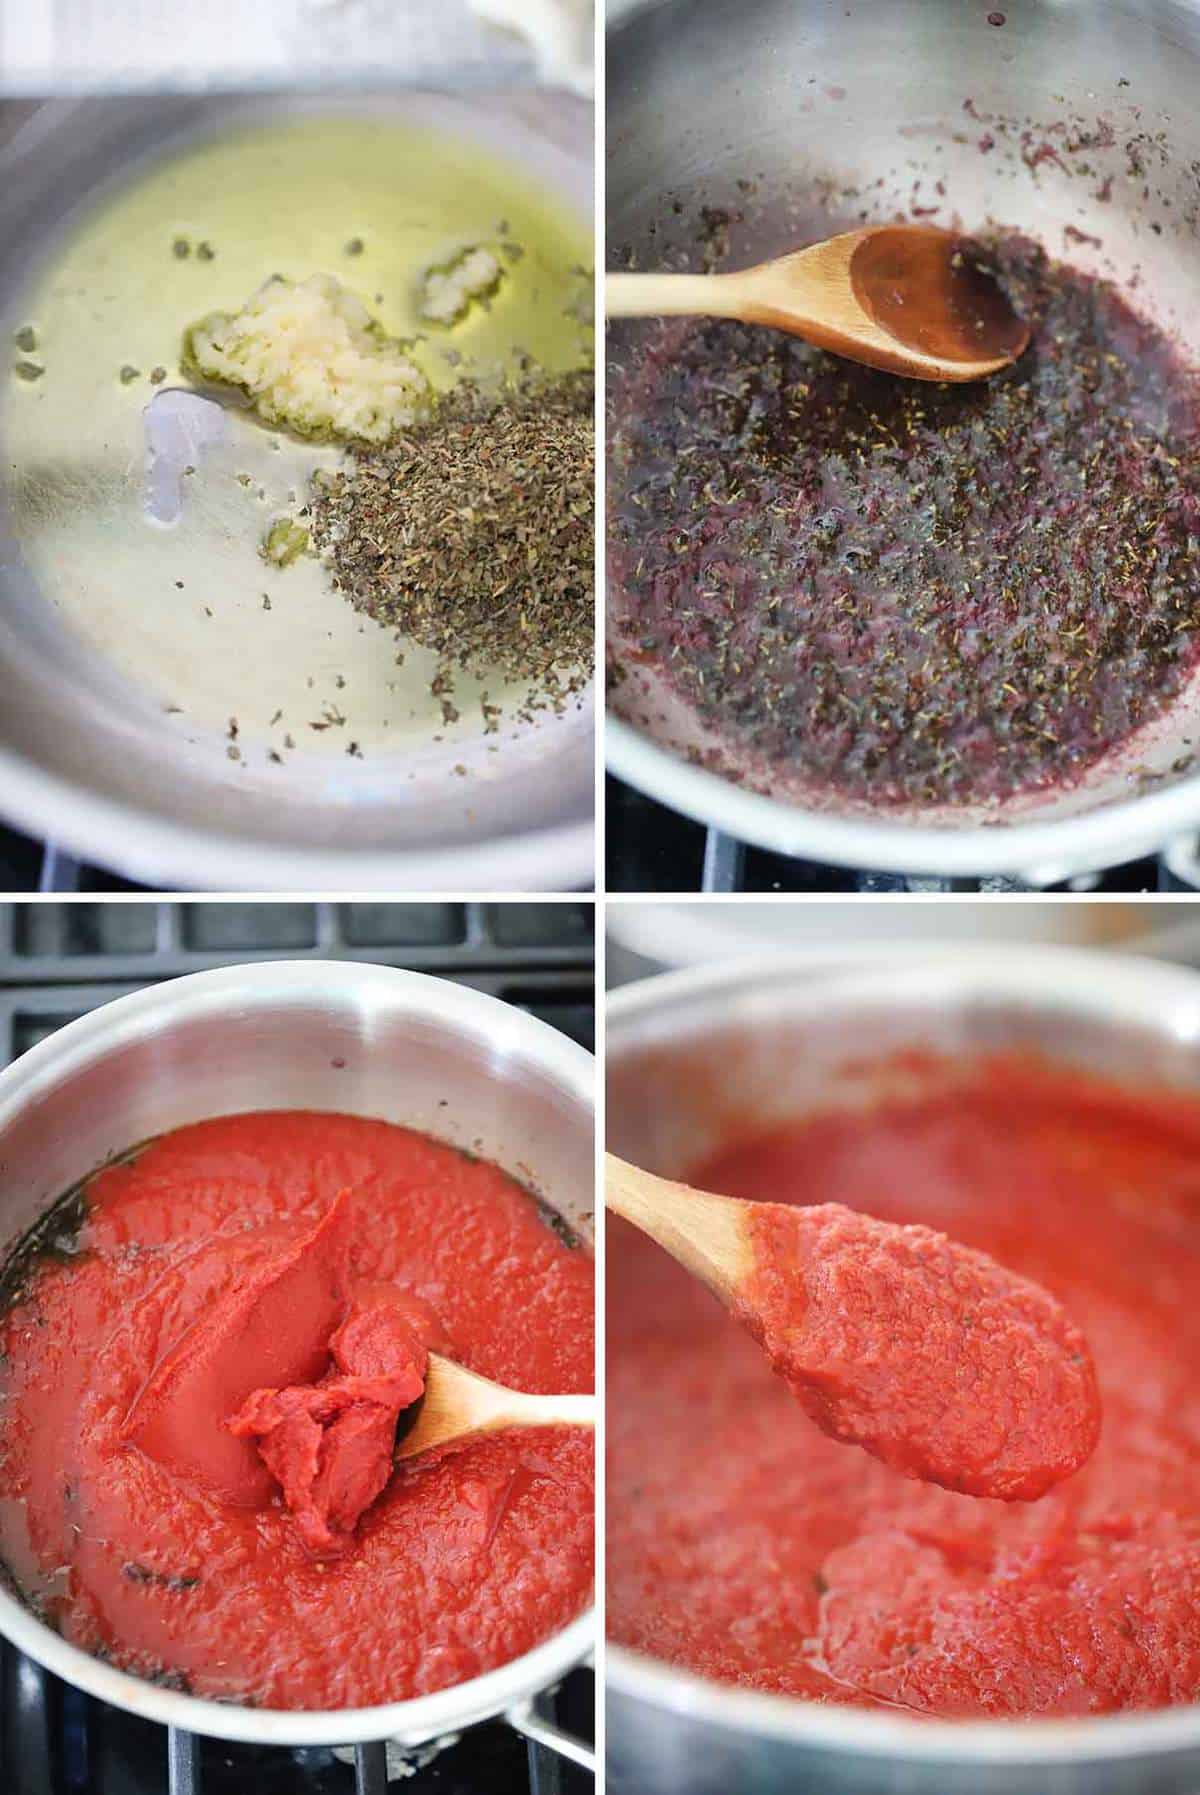 How to make homemade pizza sauce using red wine, herbs, garlic, and tomato paste.